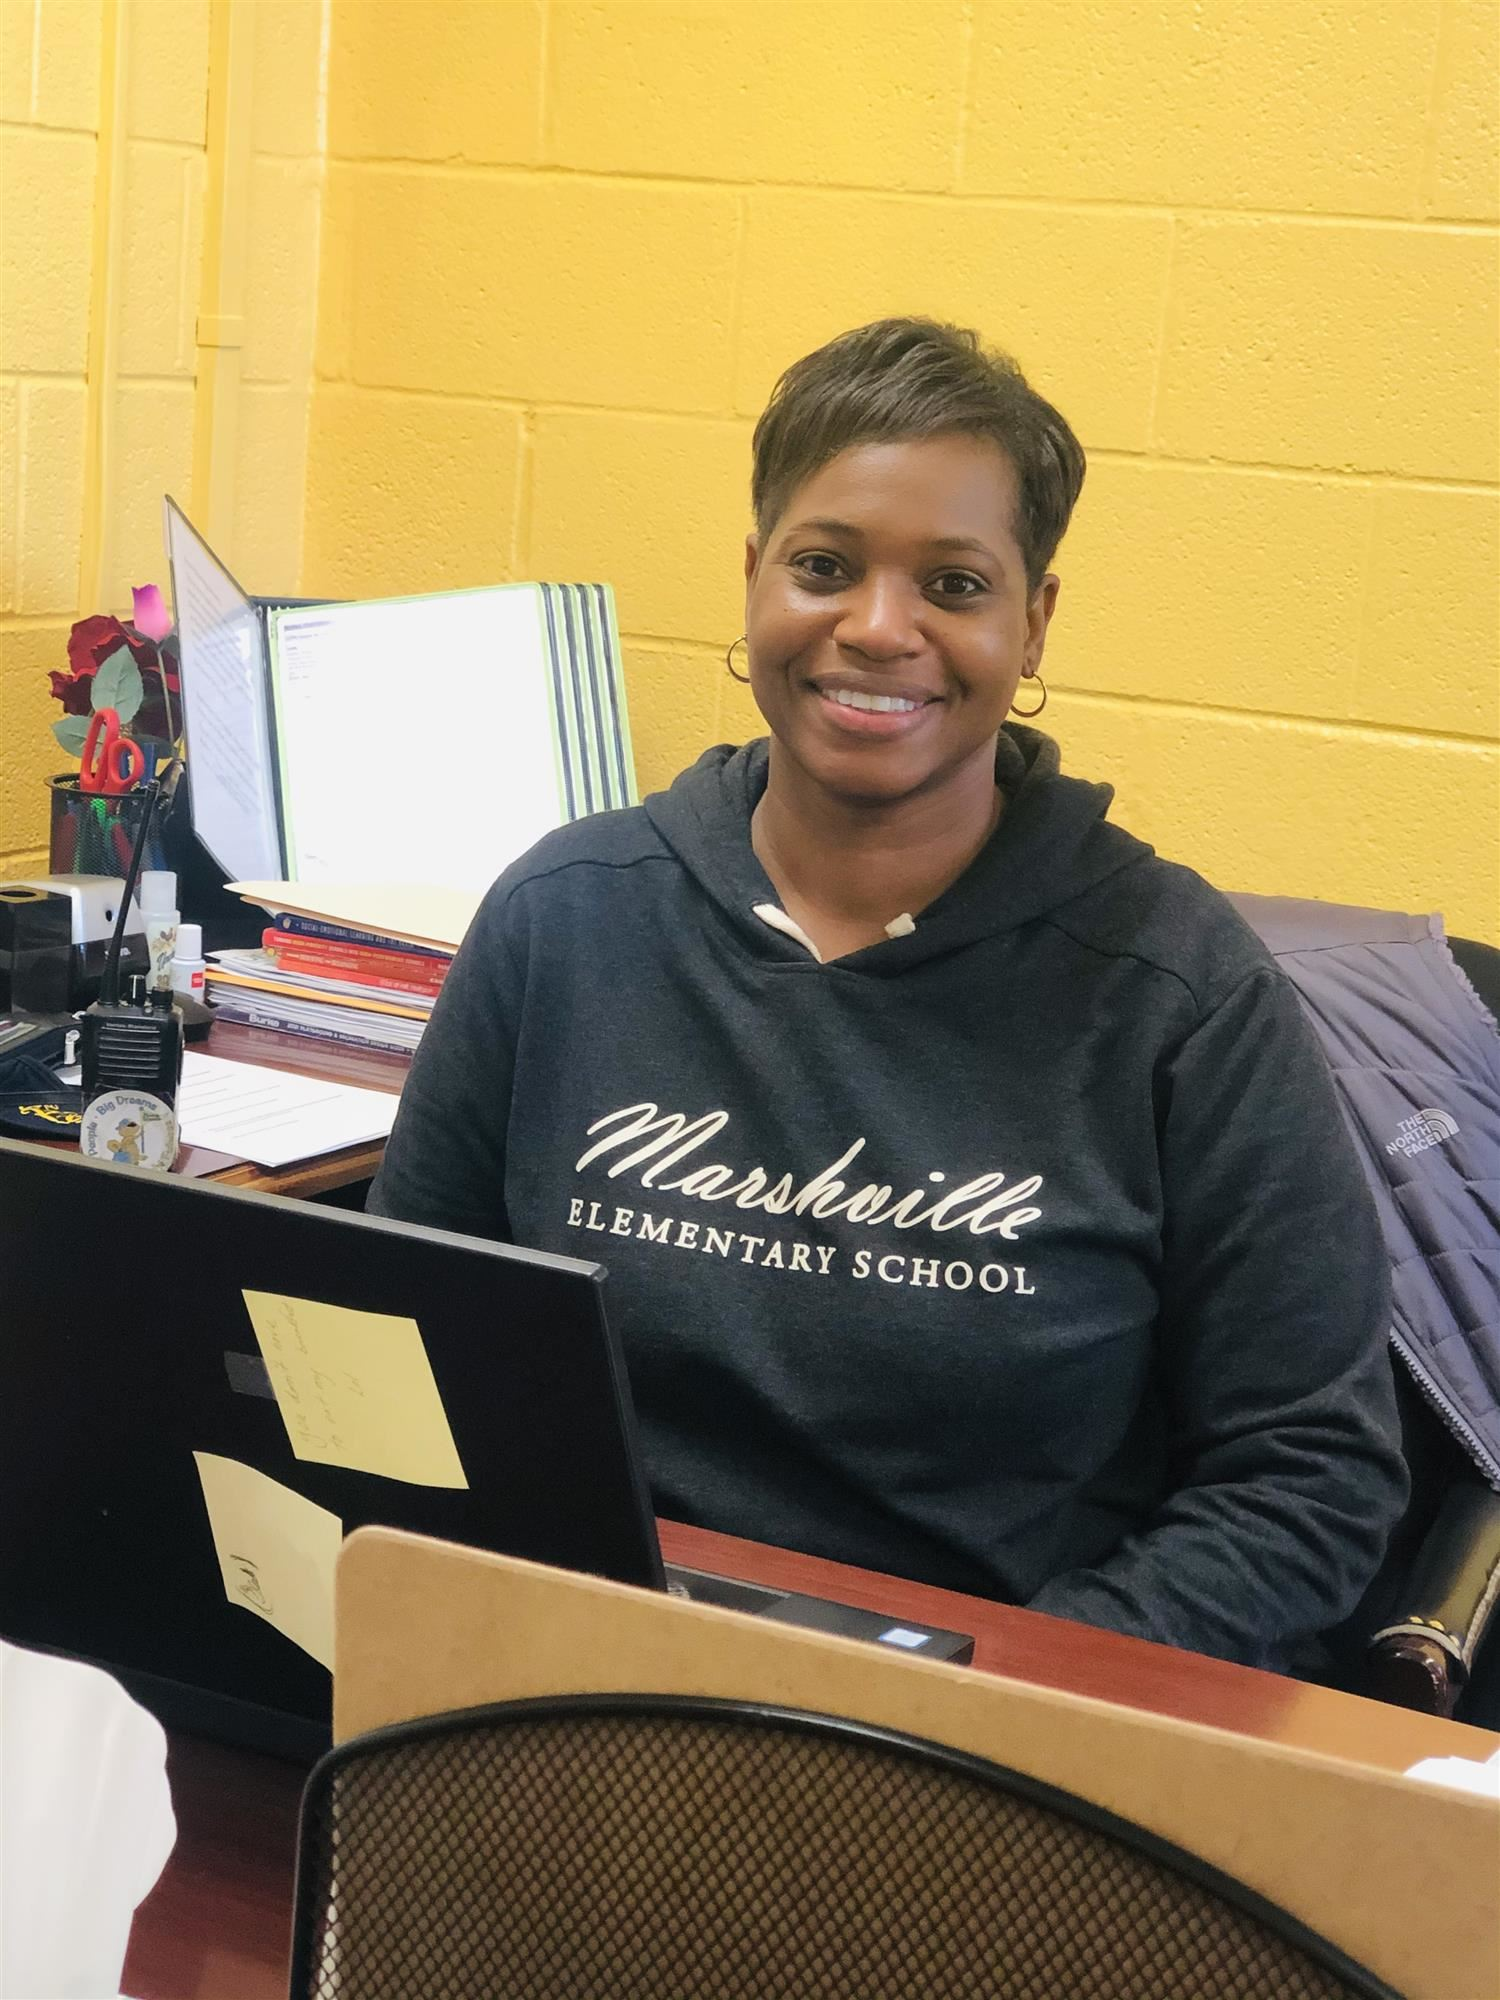 Principal Foster Recognized as Marshville Elementary's First African American Principal